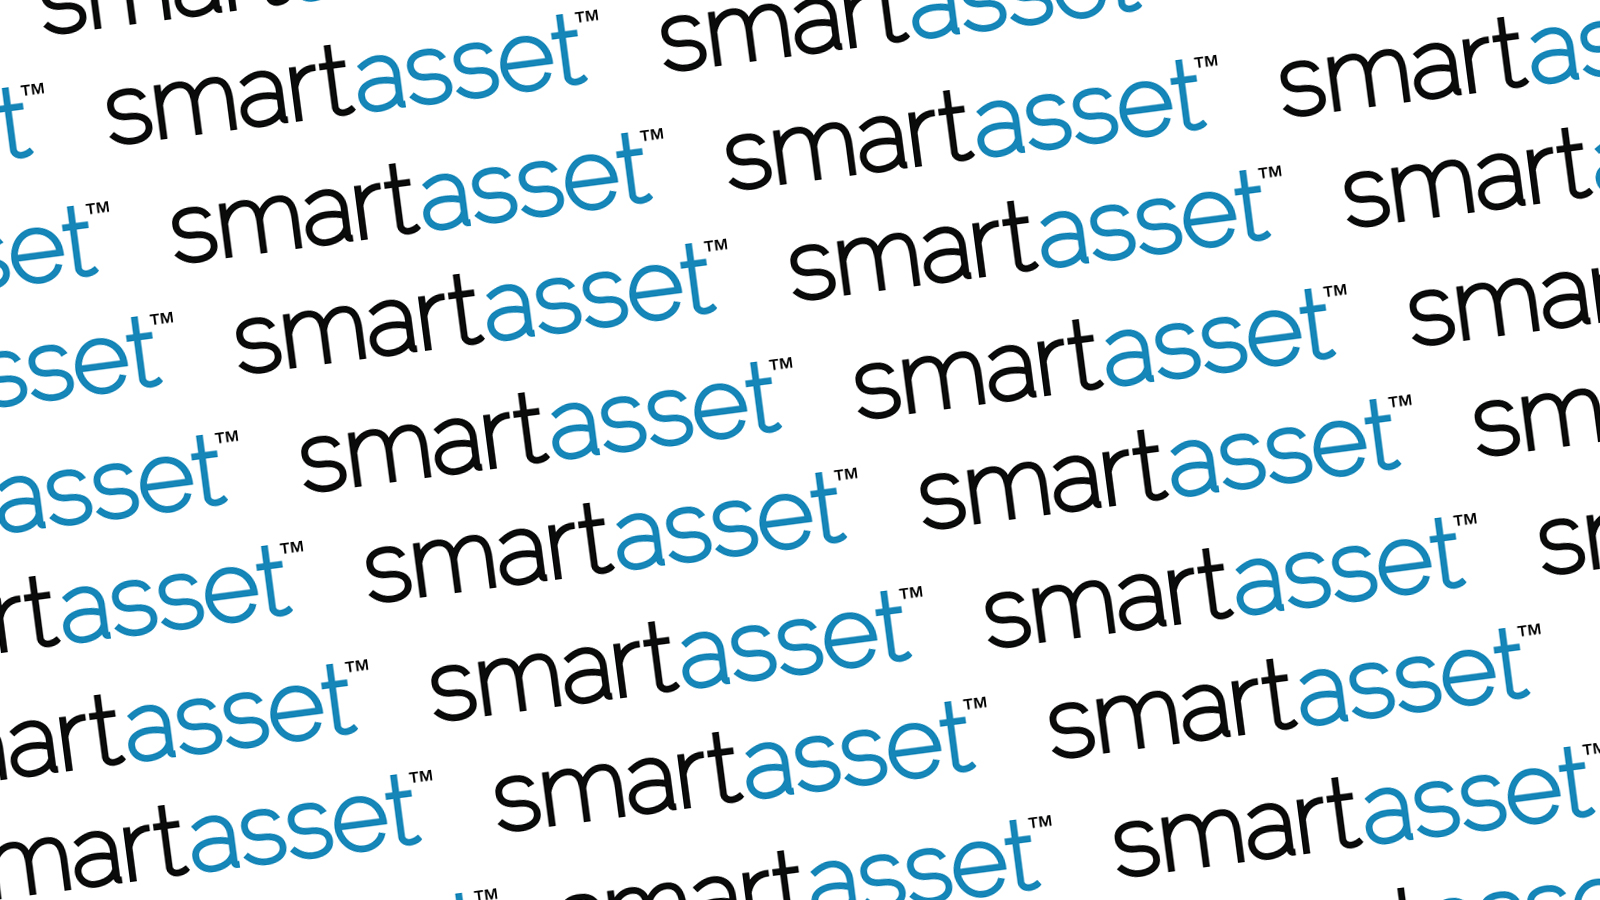 A look at the financial tech company SmartAsset (plus tips for getting hired)